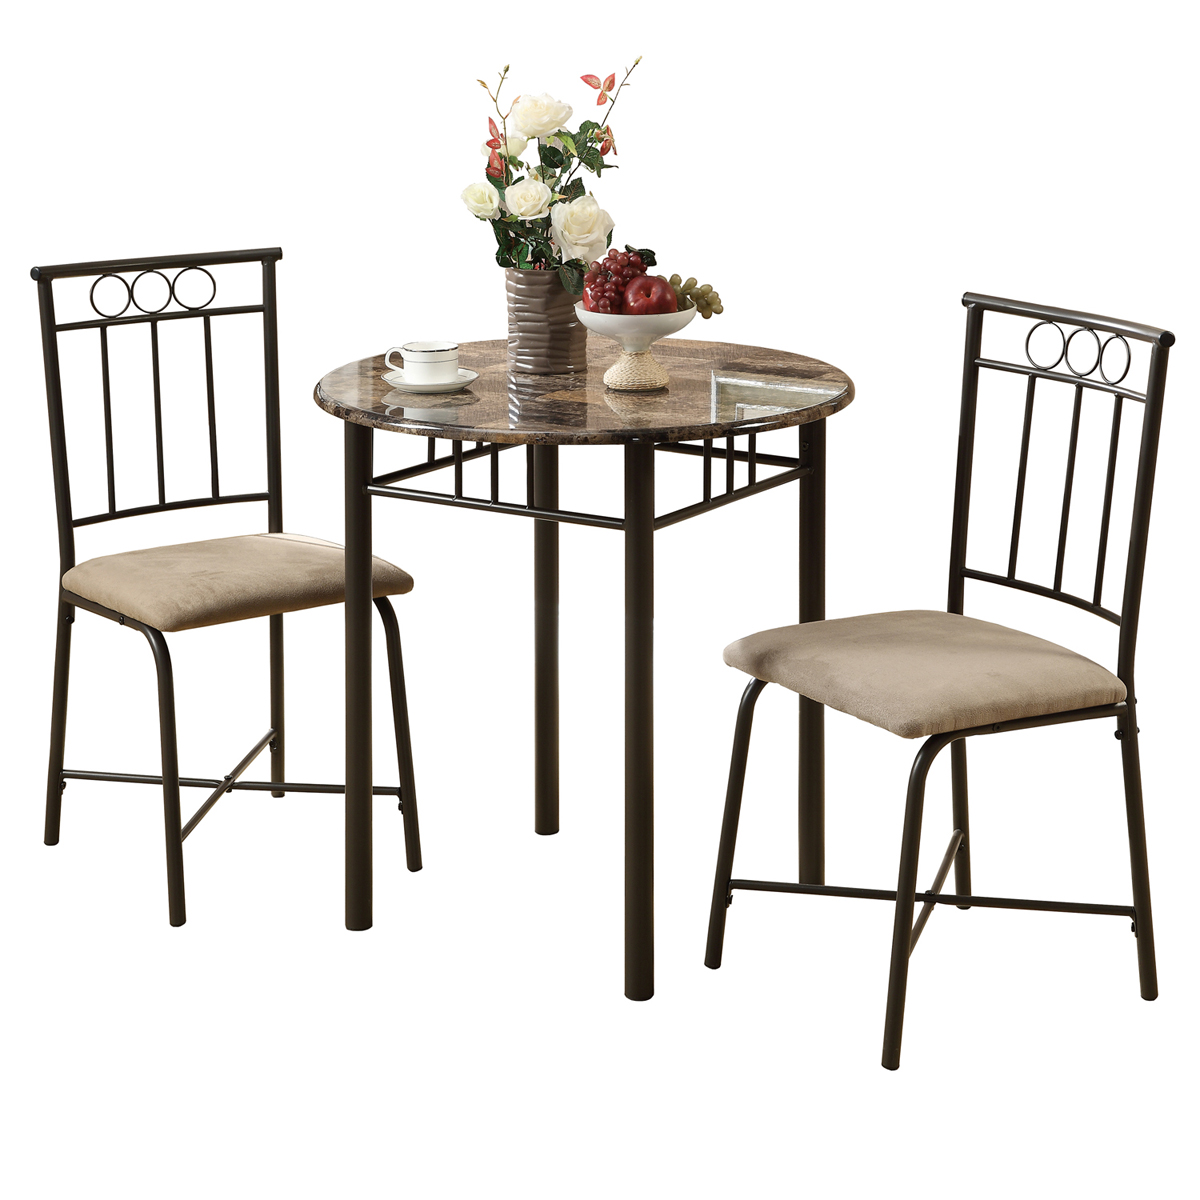 Dining Set - 3 Pieces Set / Cappuccino Marble / Bronze Metal